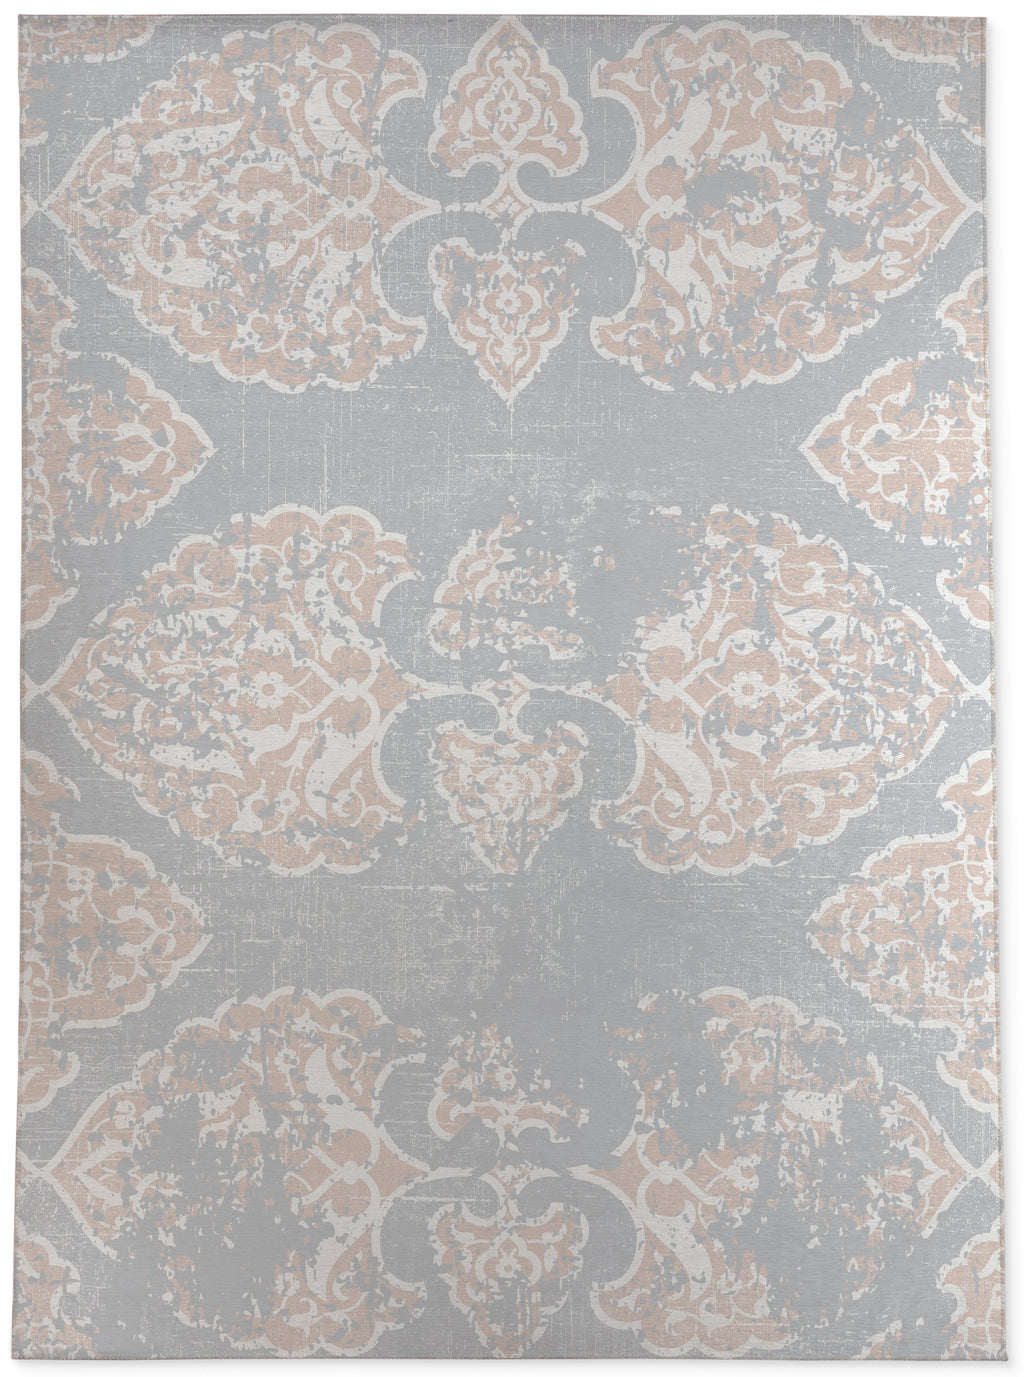 SOPHIE PINK AND GREY Area Rug By Terri Ellis